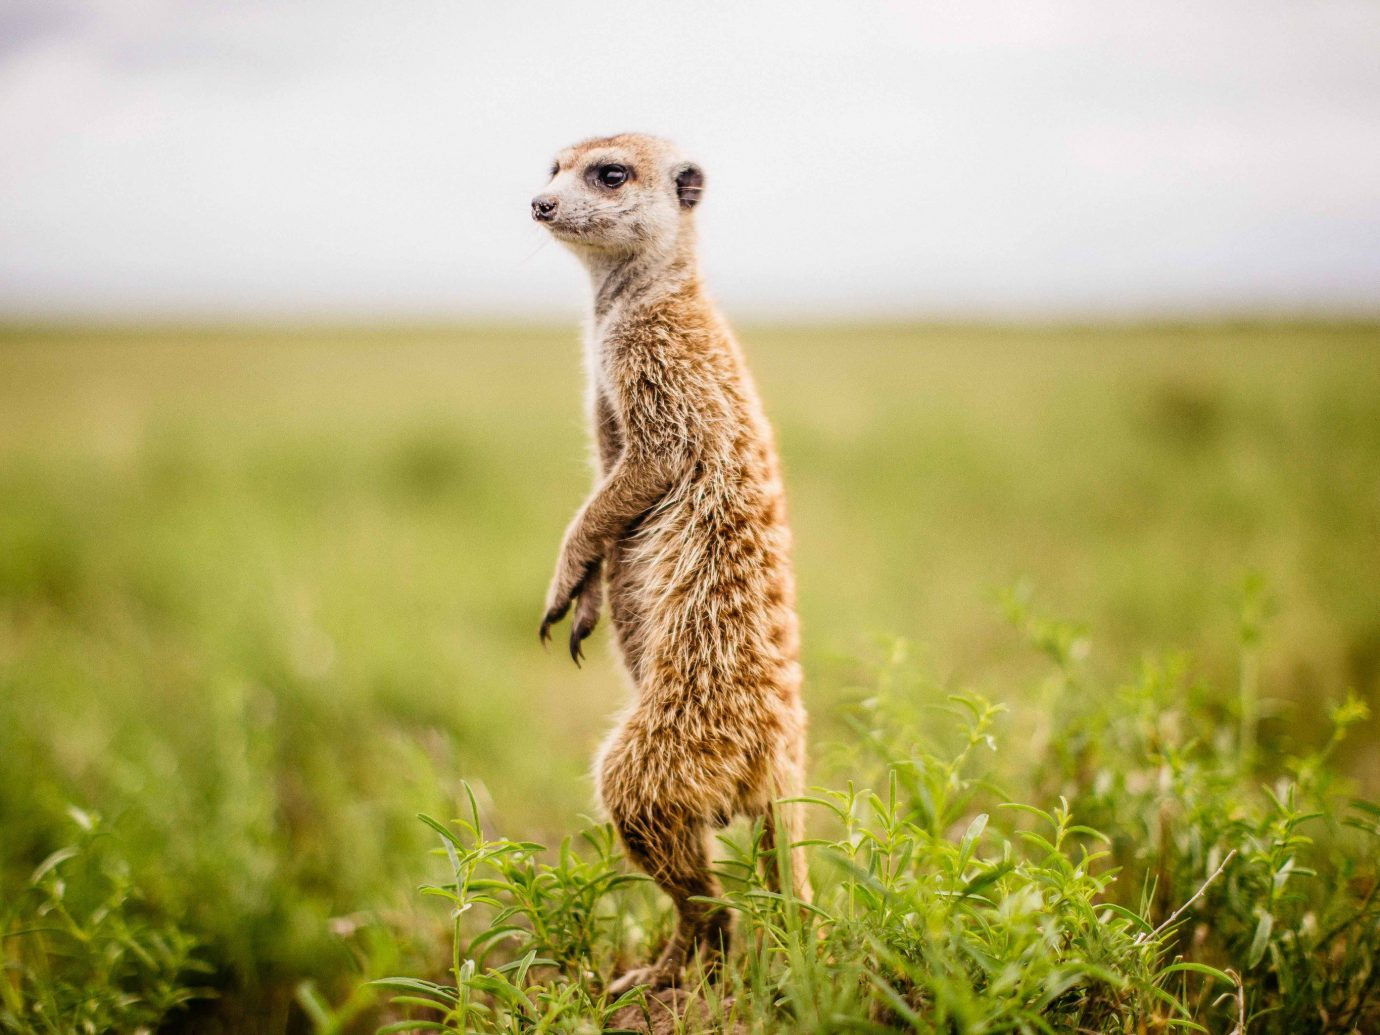 Outdoor Activities Safari Trip Ideas grass outdoor meerkat animal mammal ecosystem fauna grassland Wildlife terrestrial animal standing field prairie ecoregion mongoose whiskers snout savanna